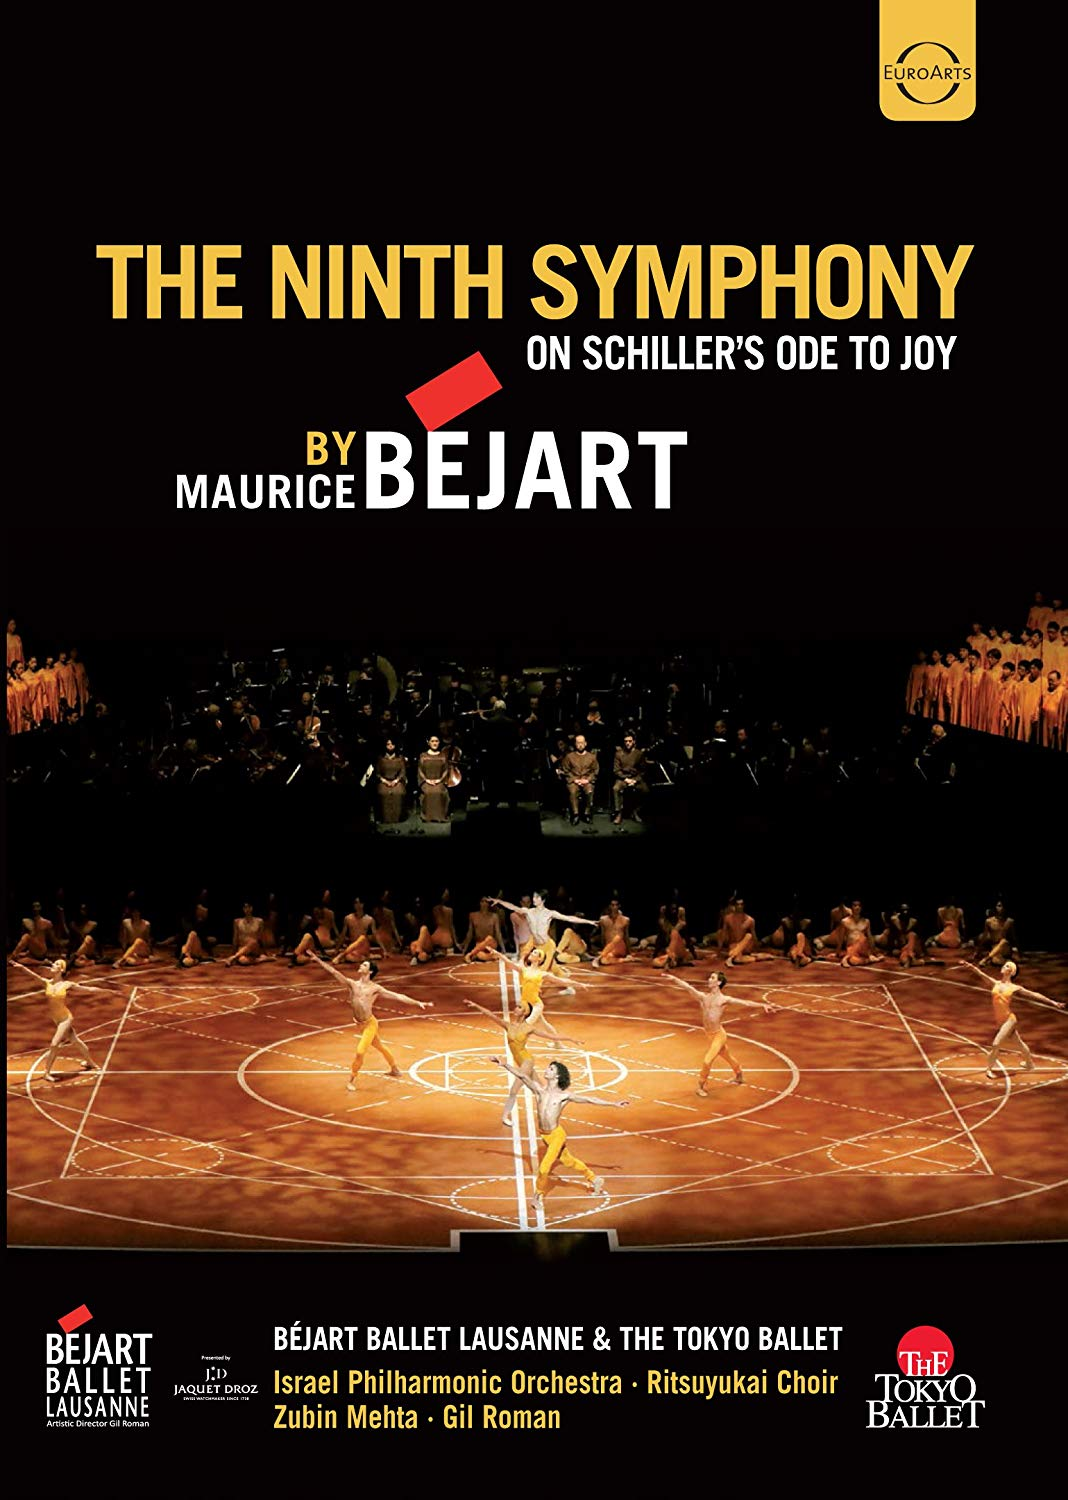 The Ninth Symphony by Maurice Bejart